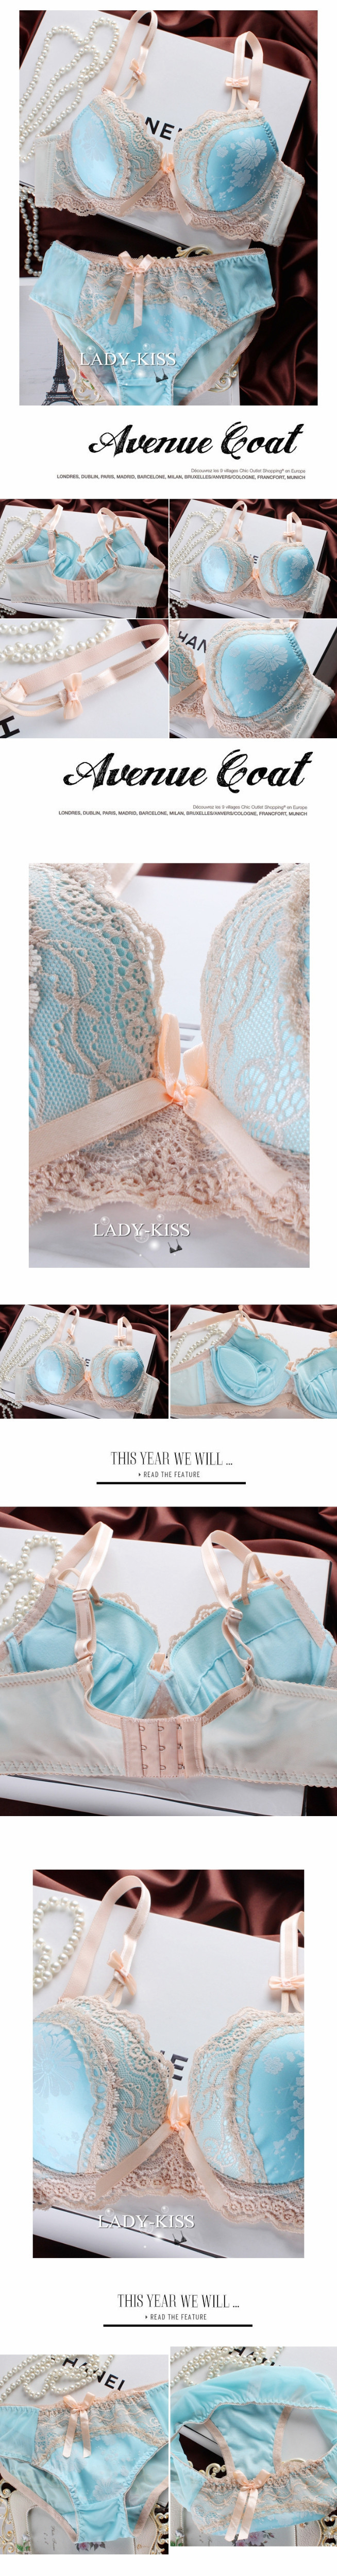 Free shipping 2014 new fashion palace thick underwear adjustable spaghetti straps girl sexy push up 3 breasted blue bra suit.7